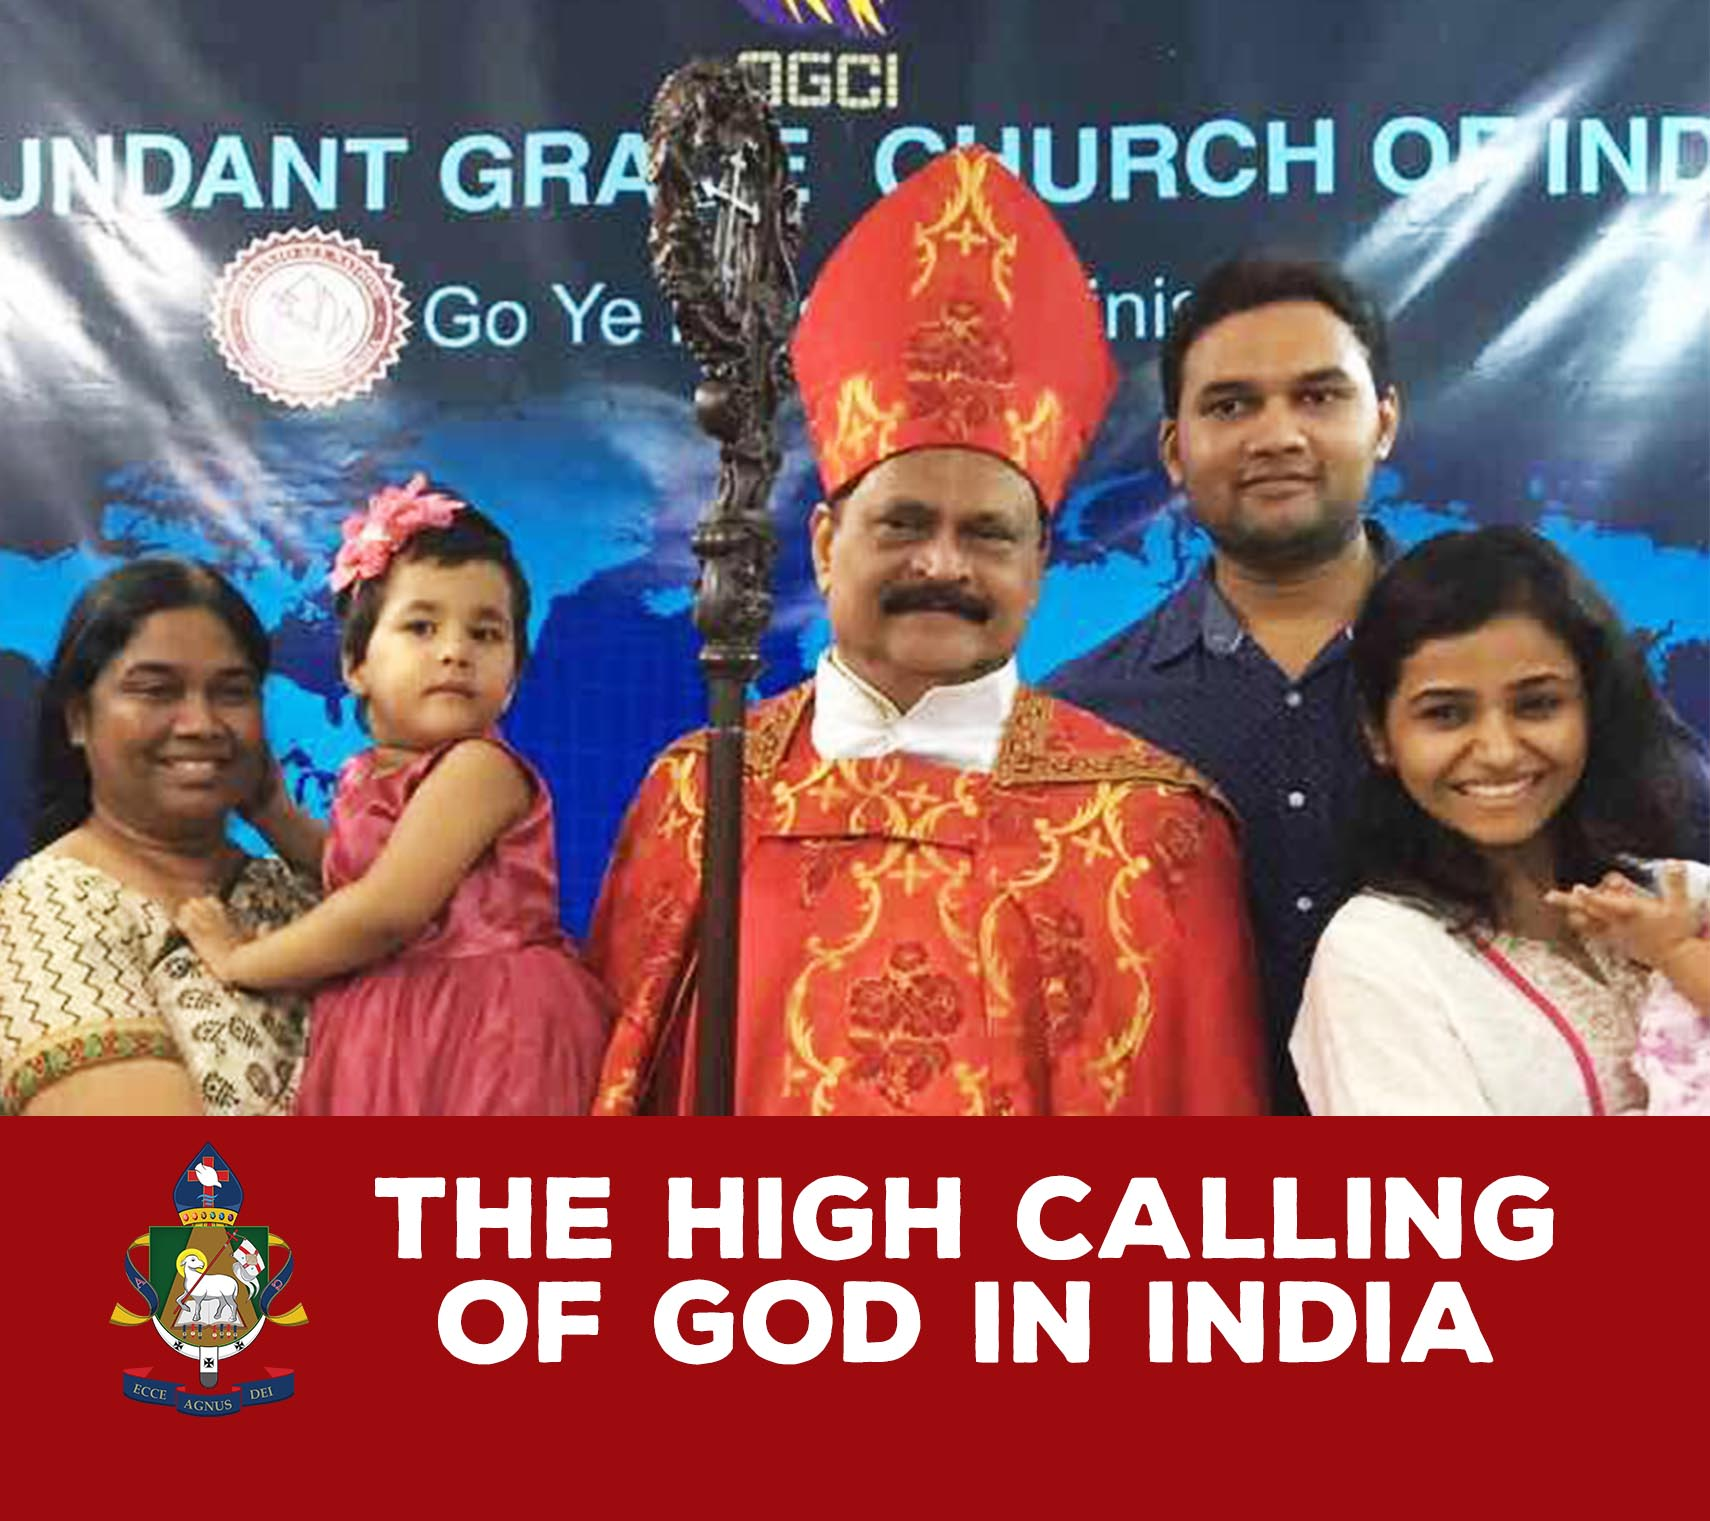 The High Calling of God in India